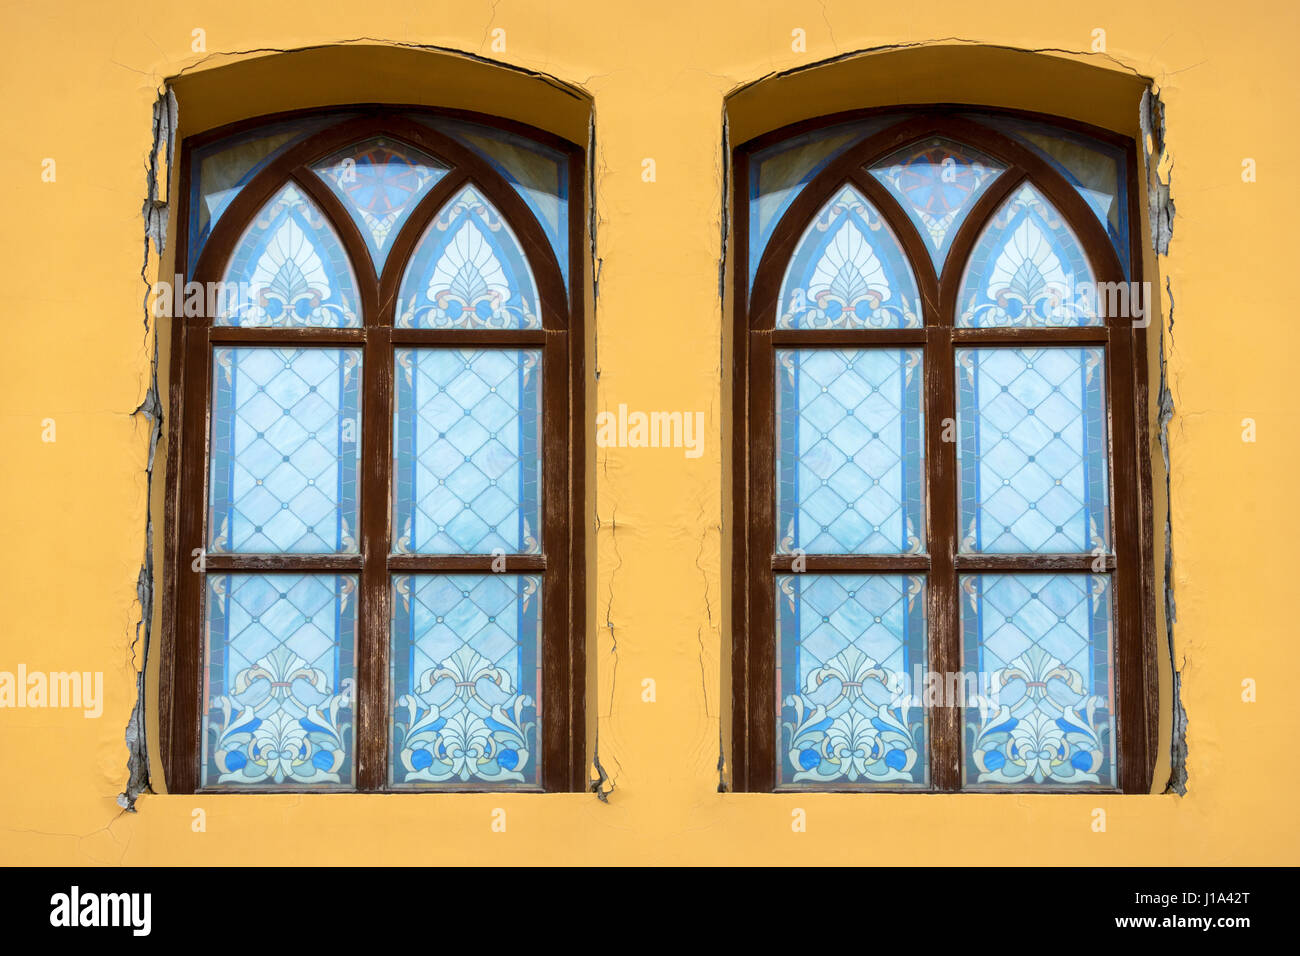 Contemporary Old Windows Used As Wall Decor Motif - The Wall Art ...